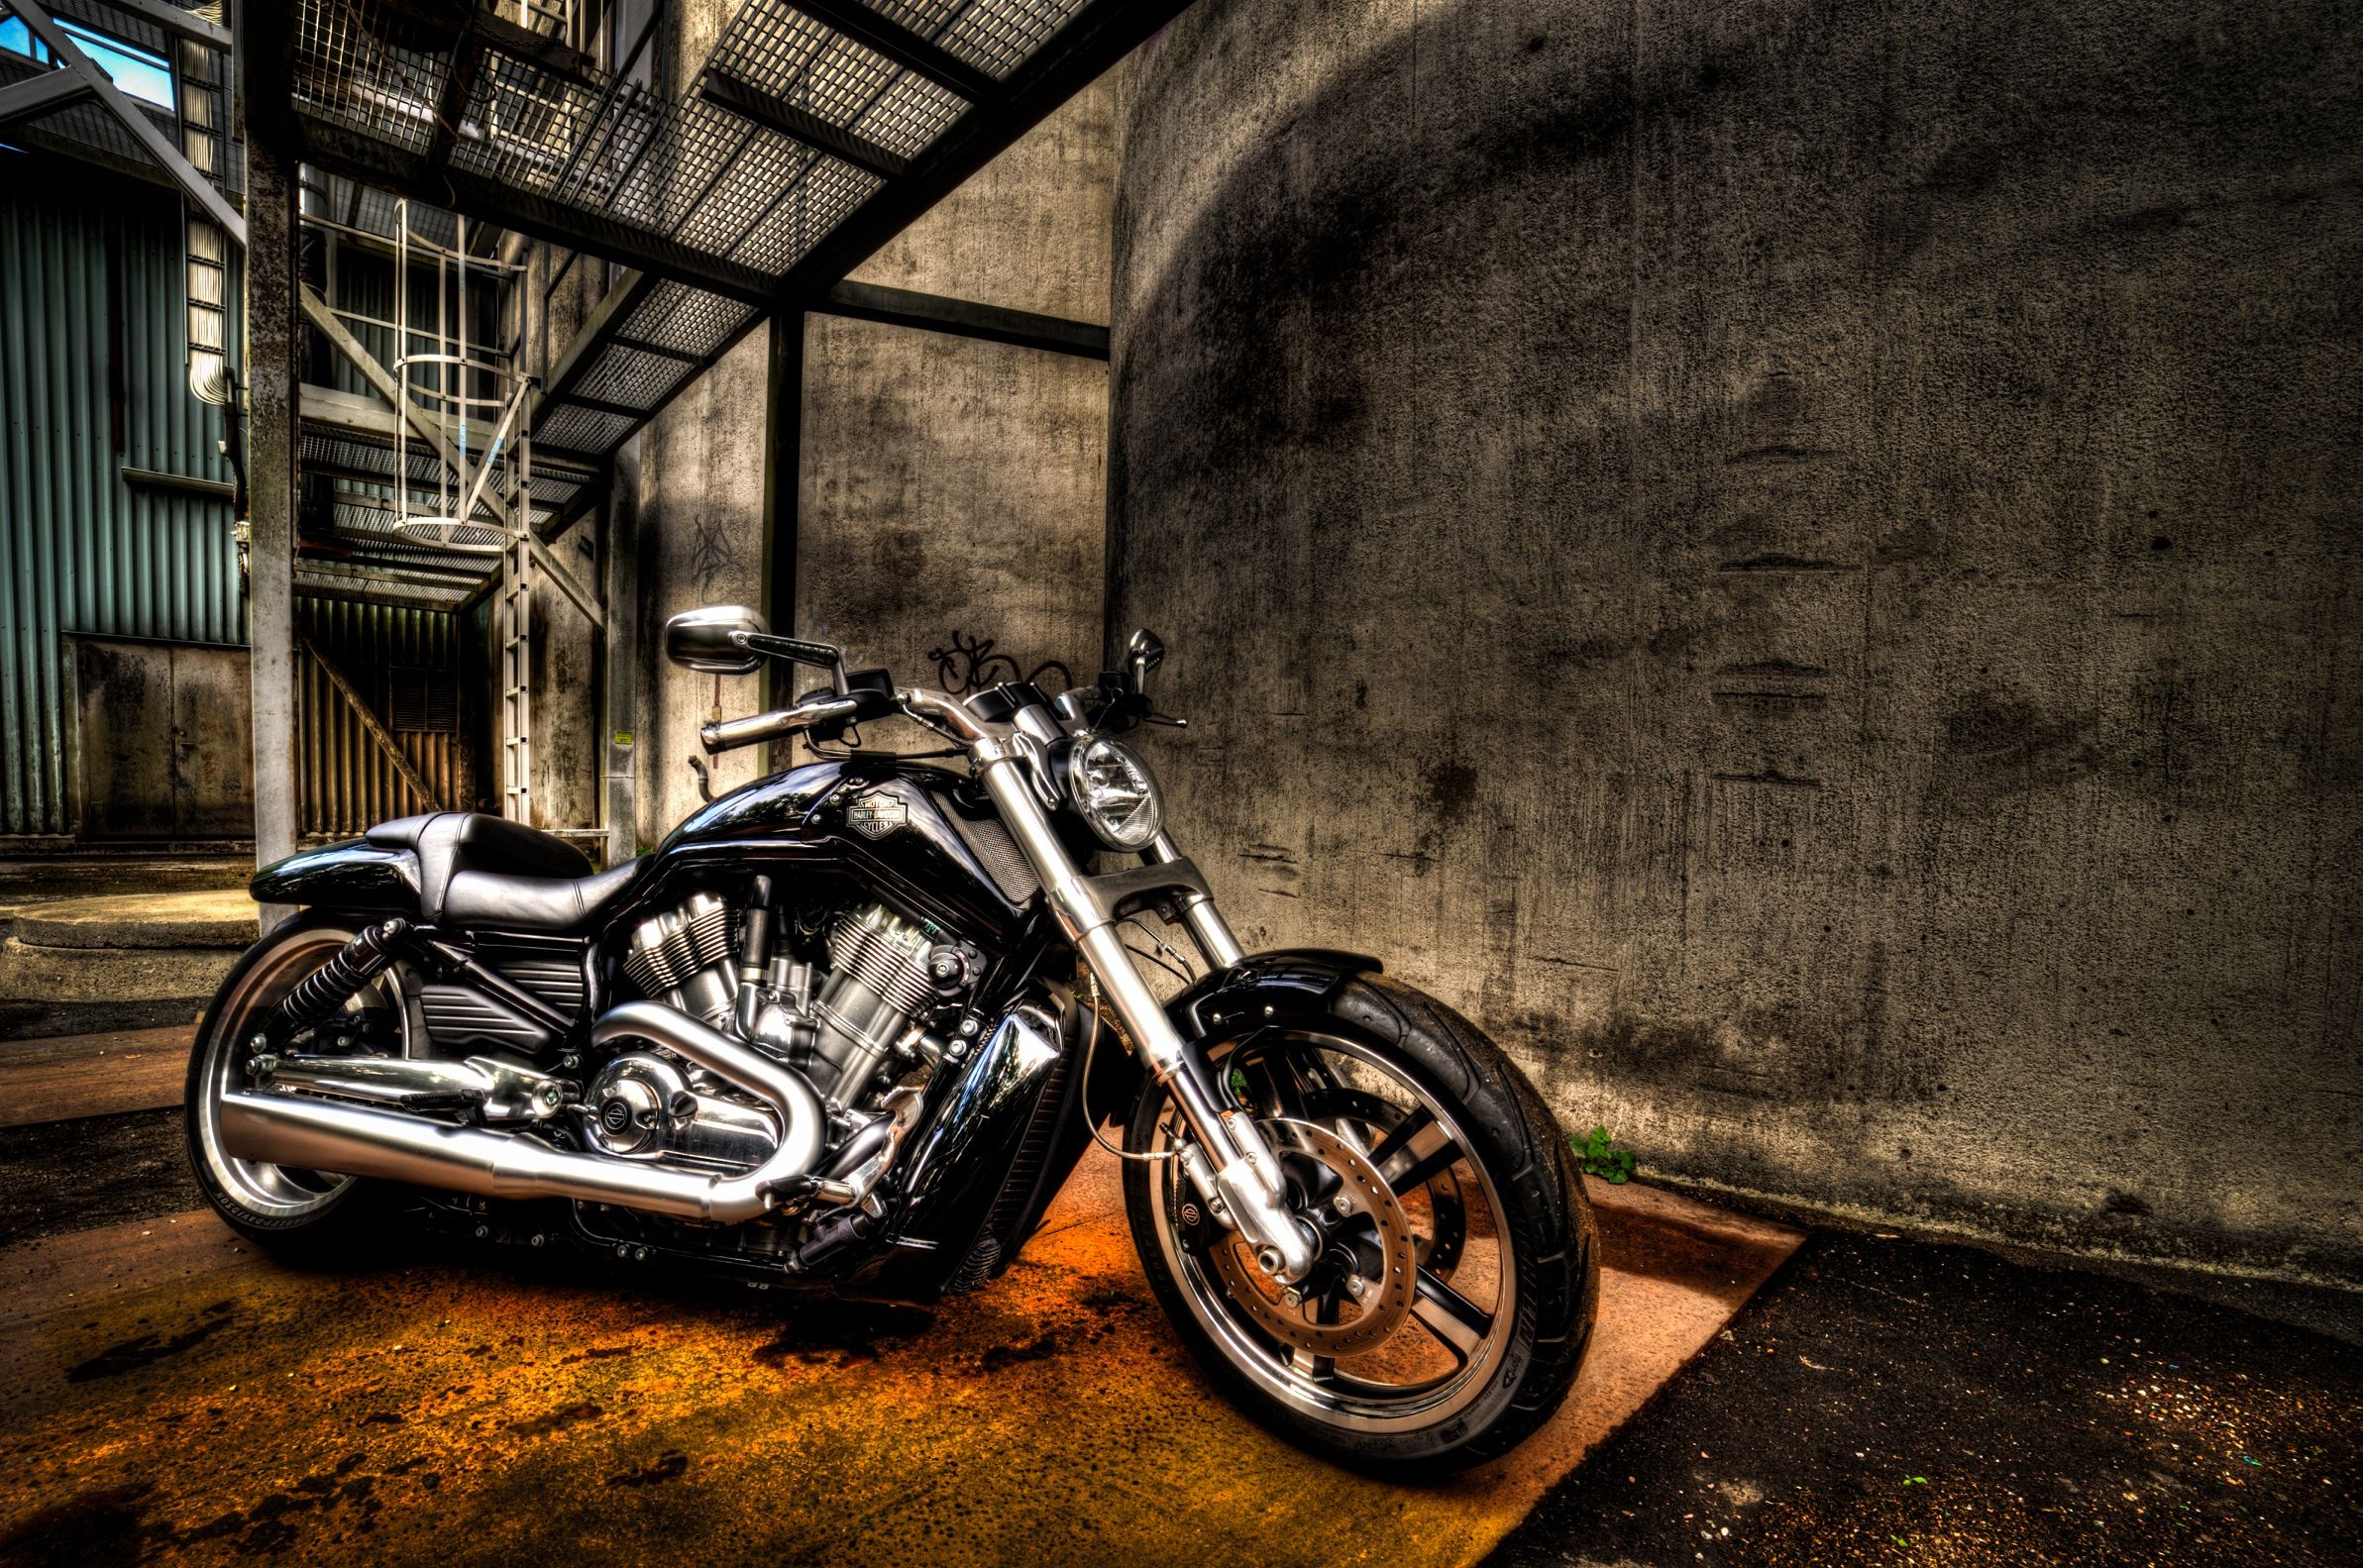 Muscle Harley V Rod Inspiration for Future Build